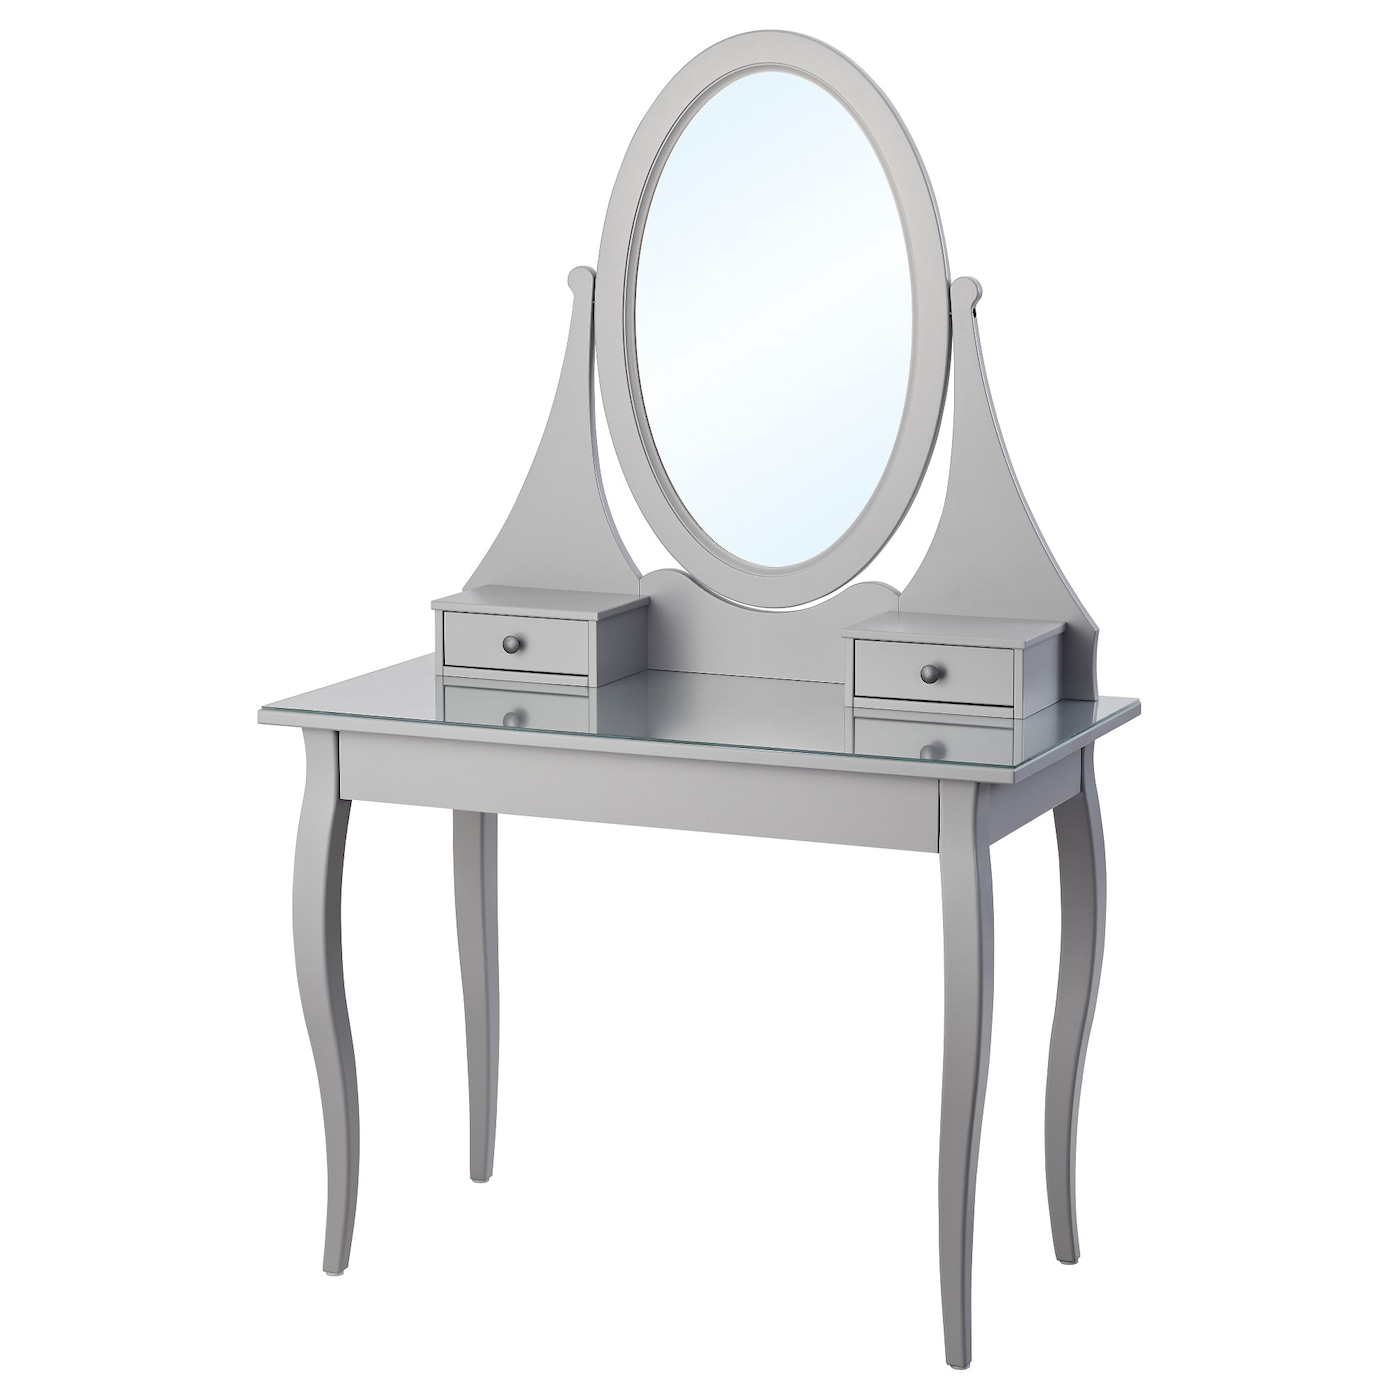 Hemnes dressing table with mirror grey 100x50 cm ikea for Cheap dressing table with mirror